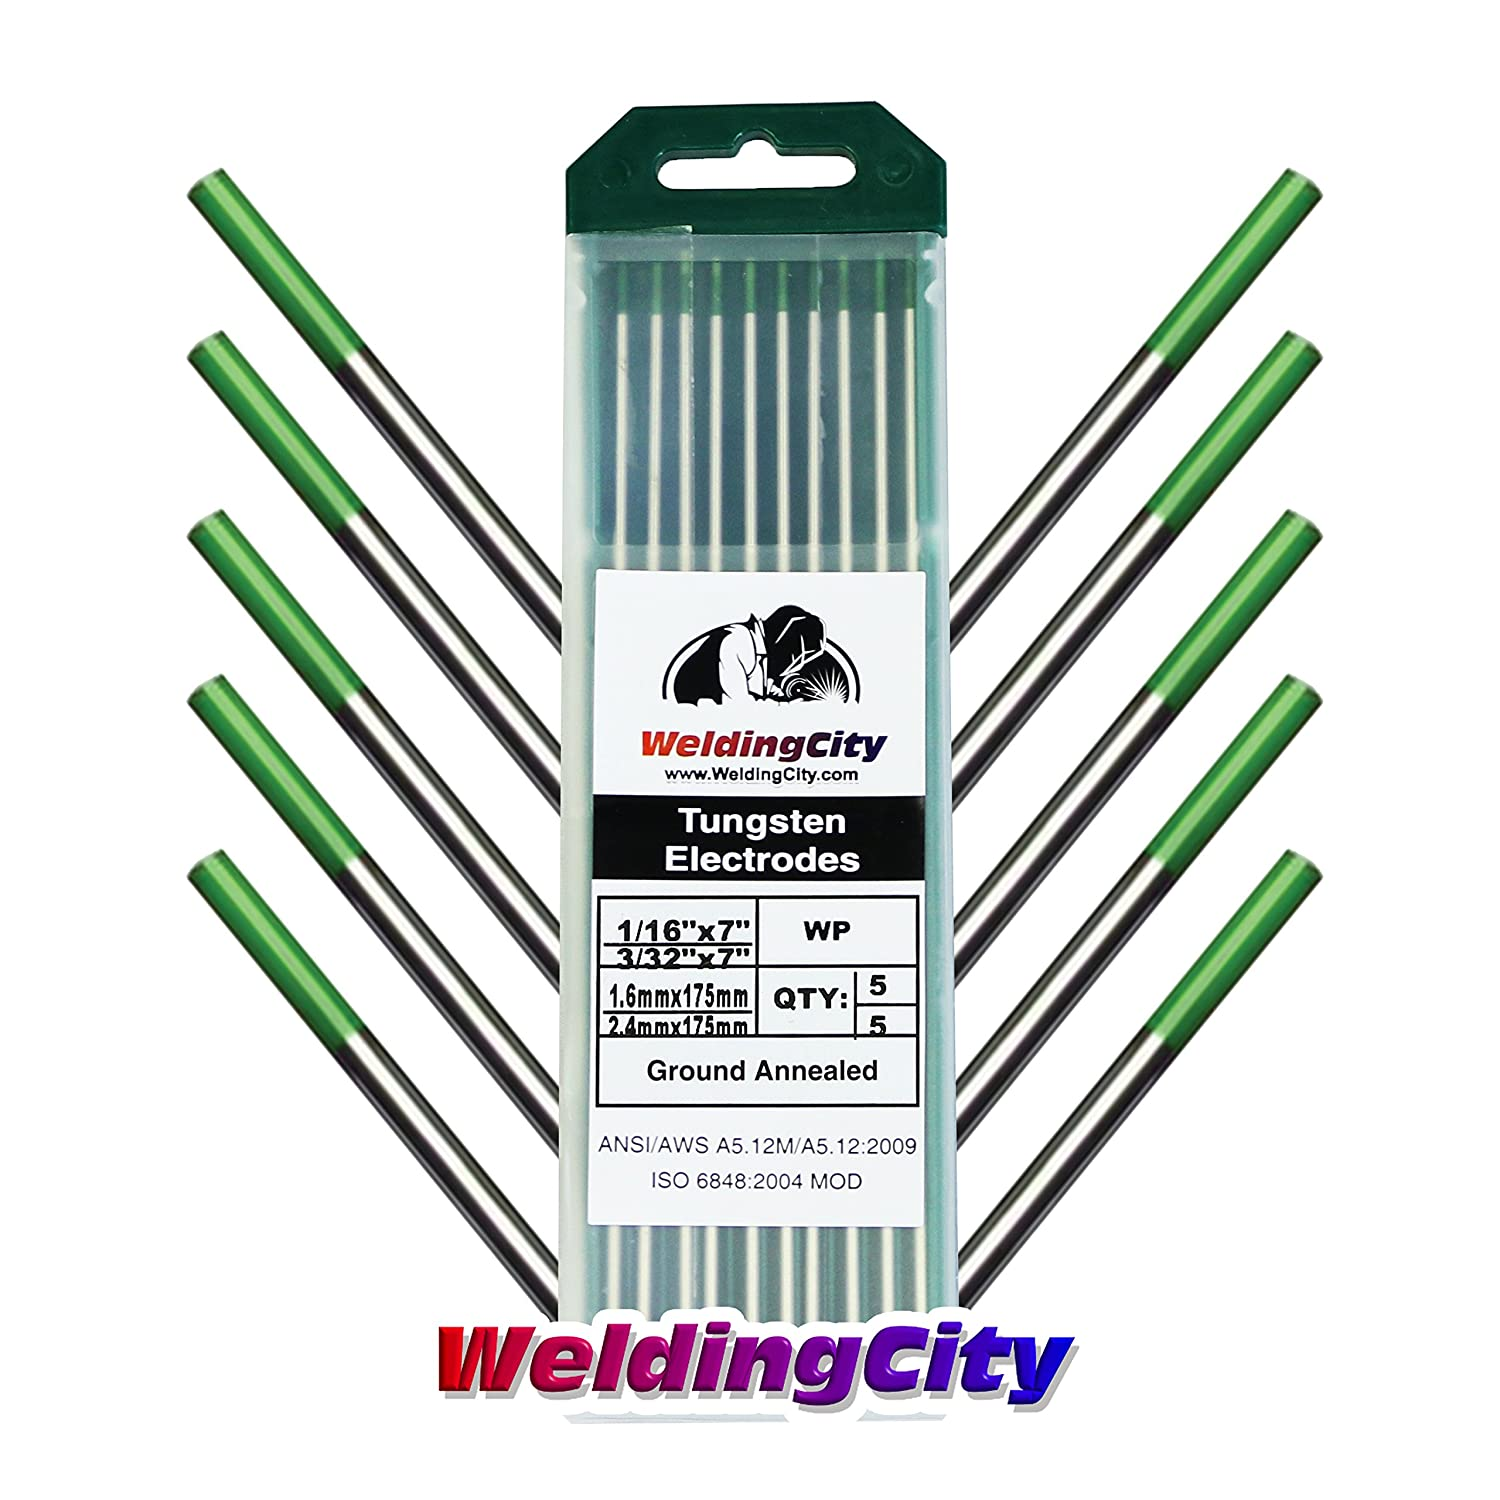 5 WeldingCity Pure 5 Tungsten TIG Welding Electrodes Assorted Size 1//16 Green and 3//32